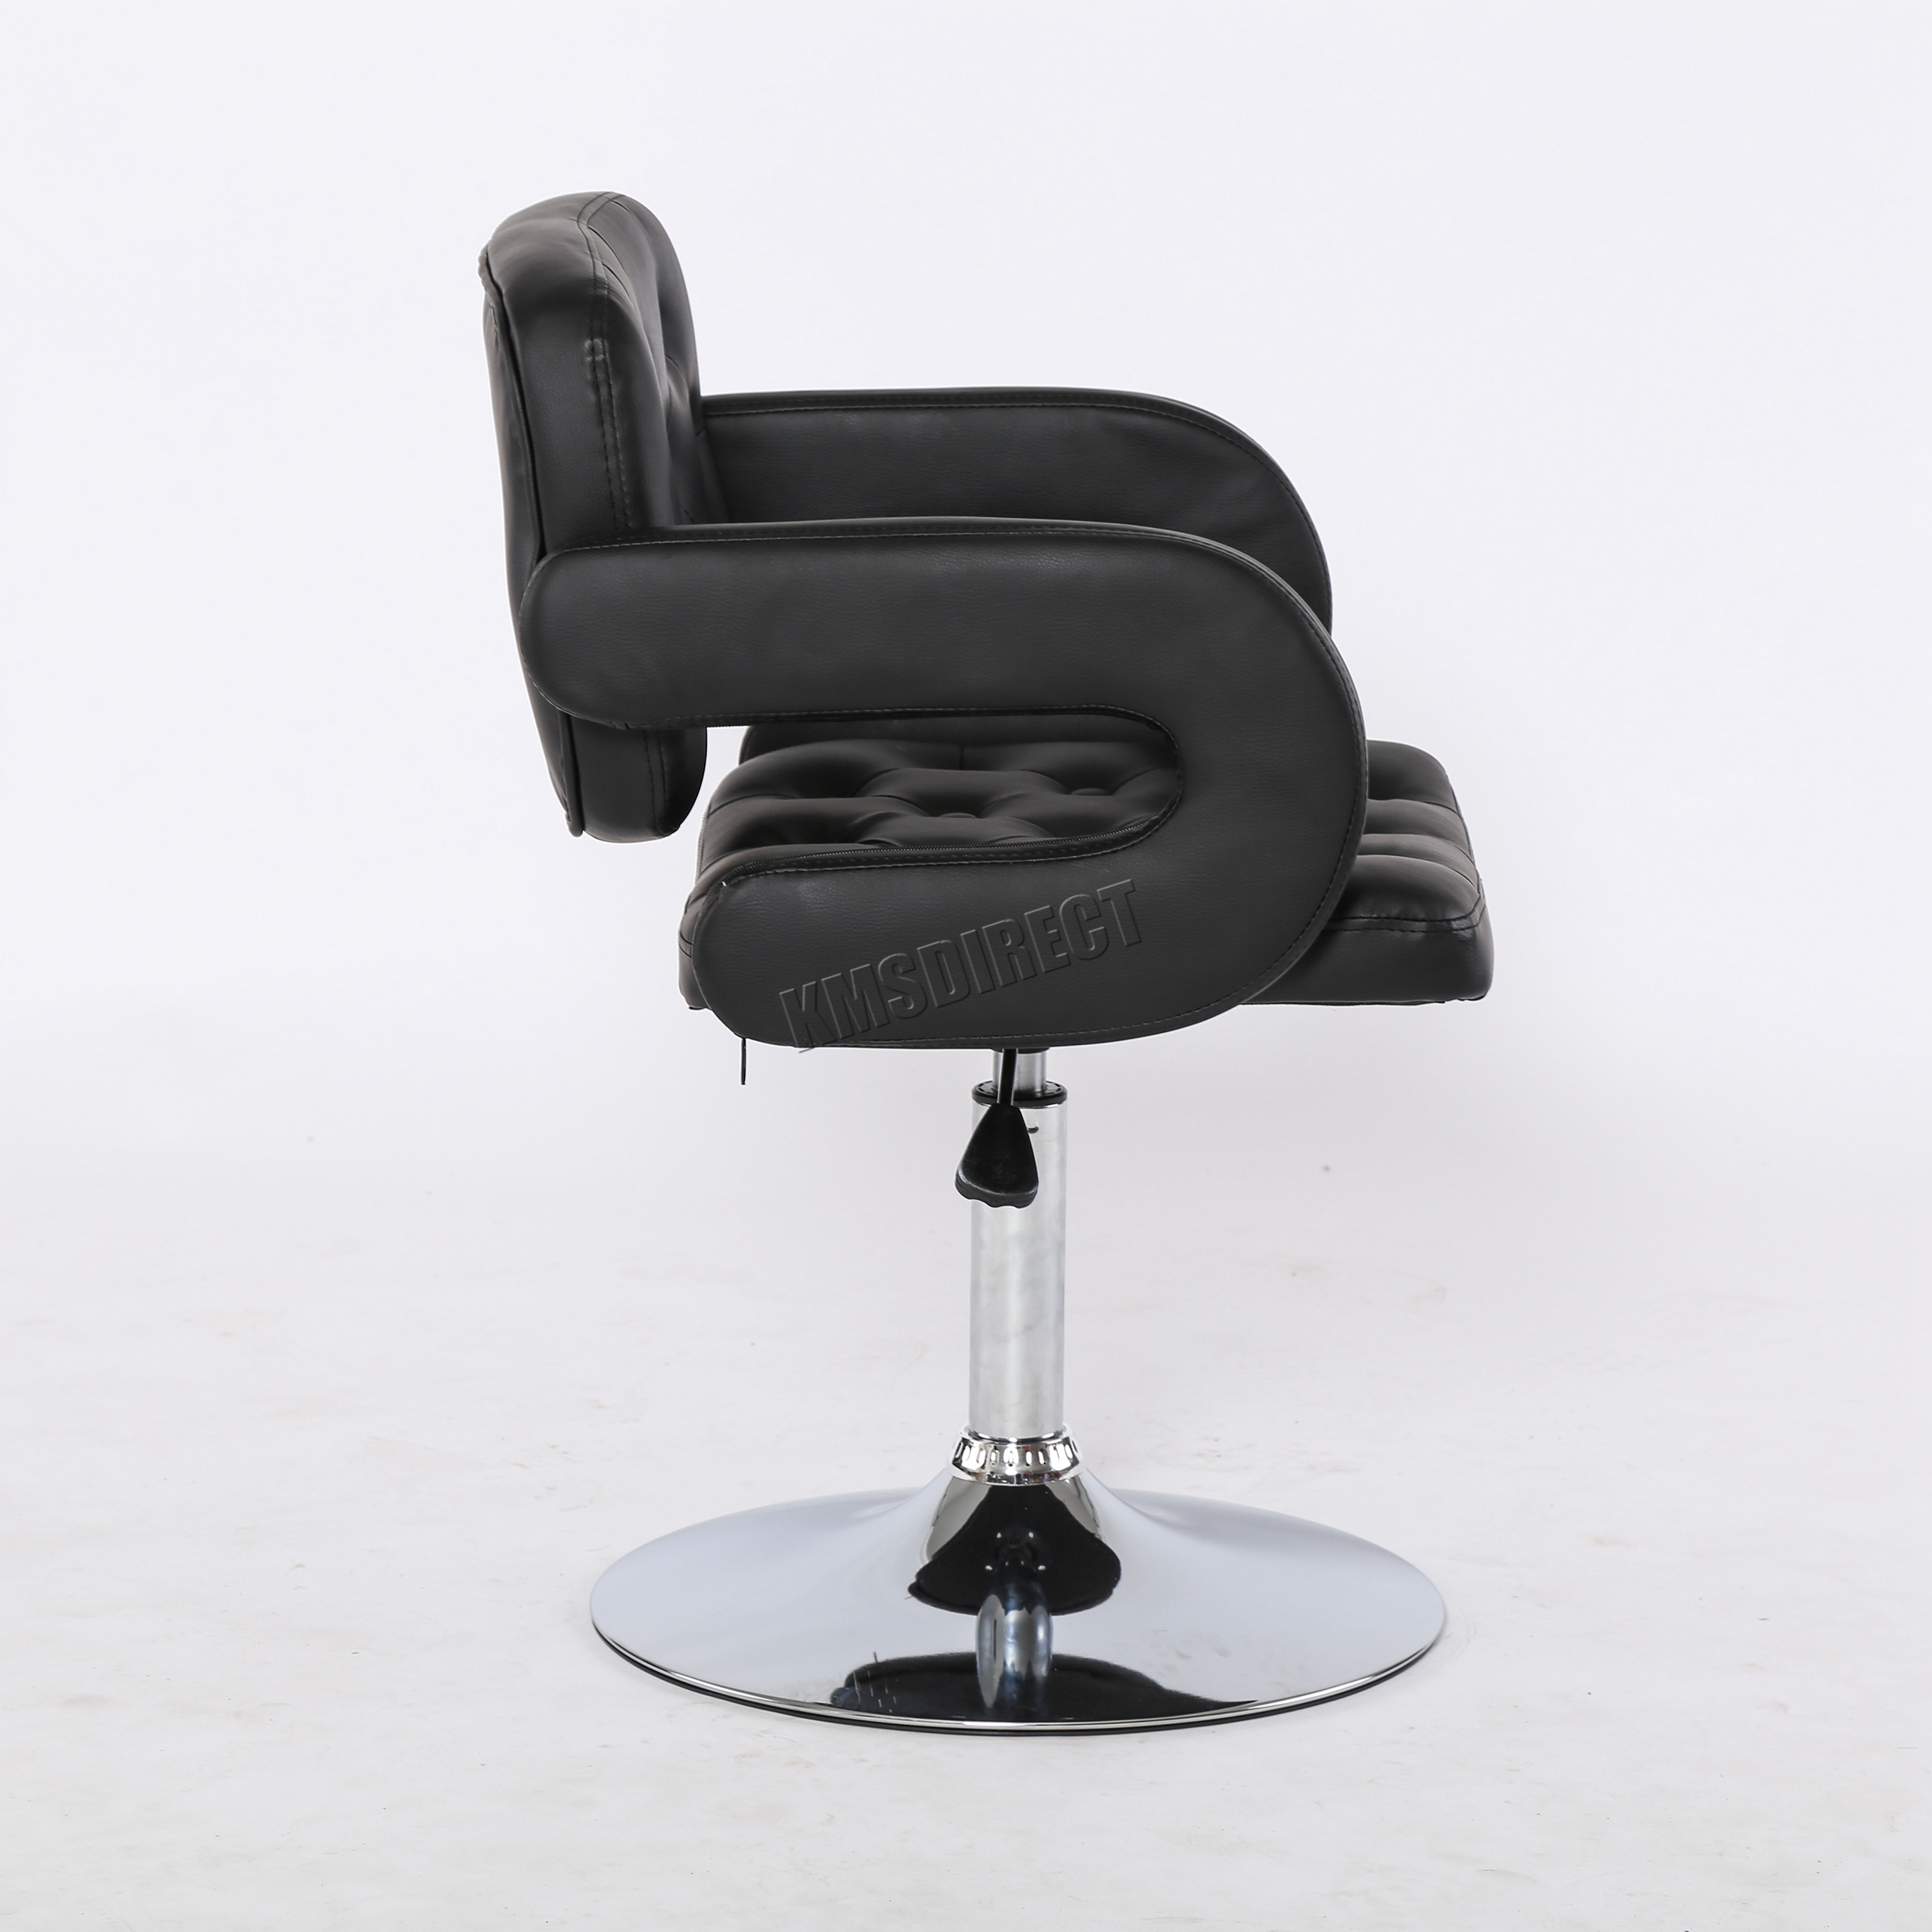 beauty salon chairs images revolving chair parts names foxhunter barber hairdressing hair cut